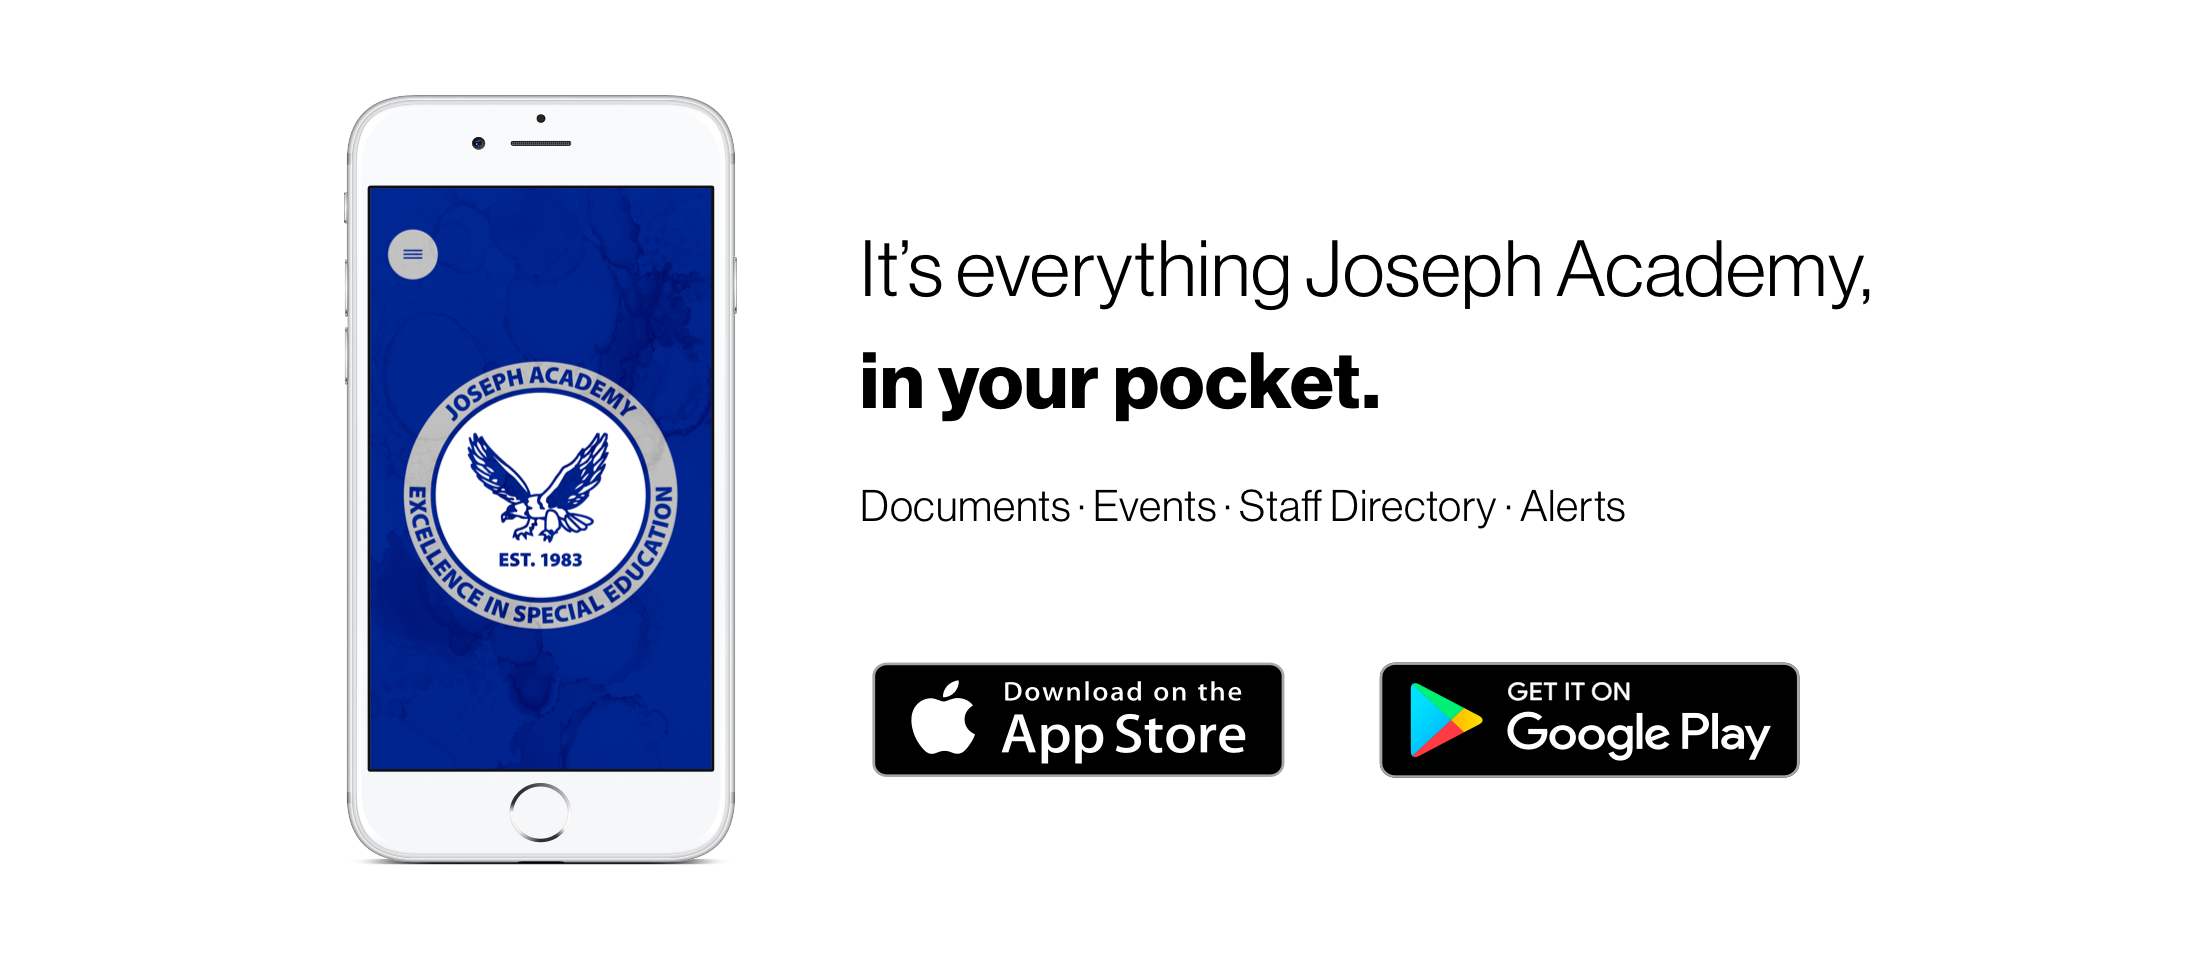 It's everything Joseph Academy in your pocket!